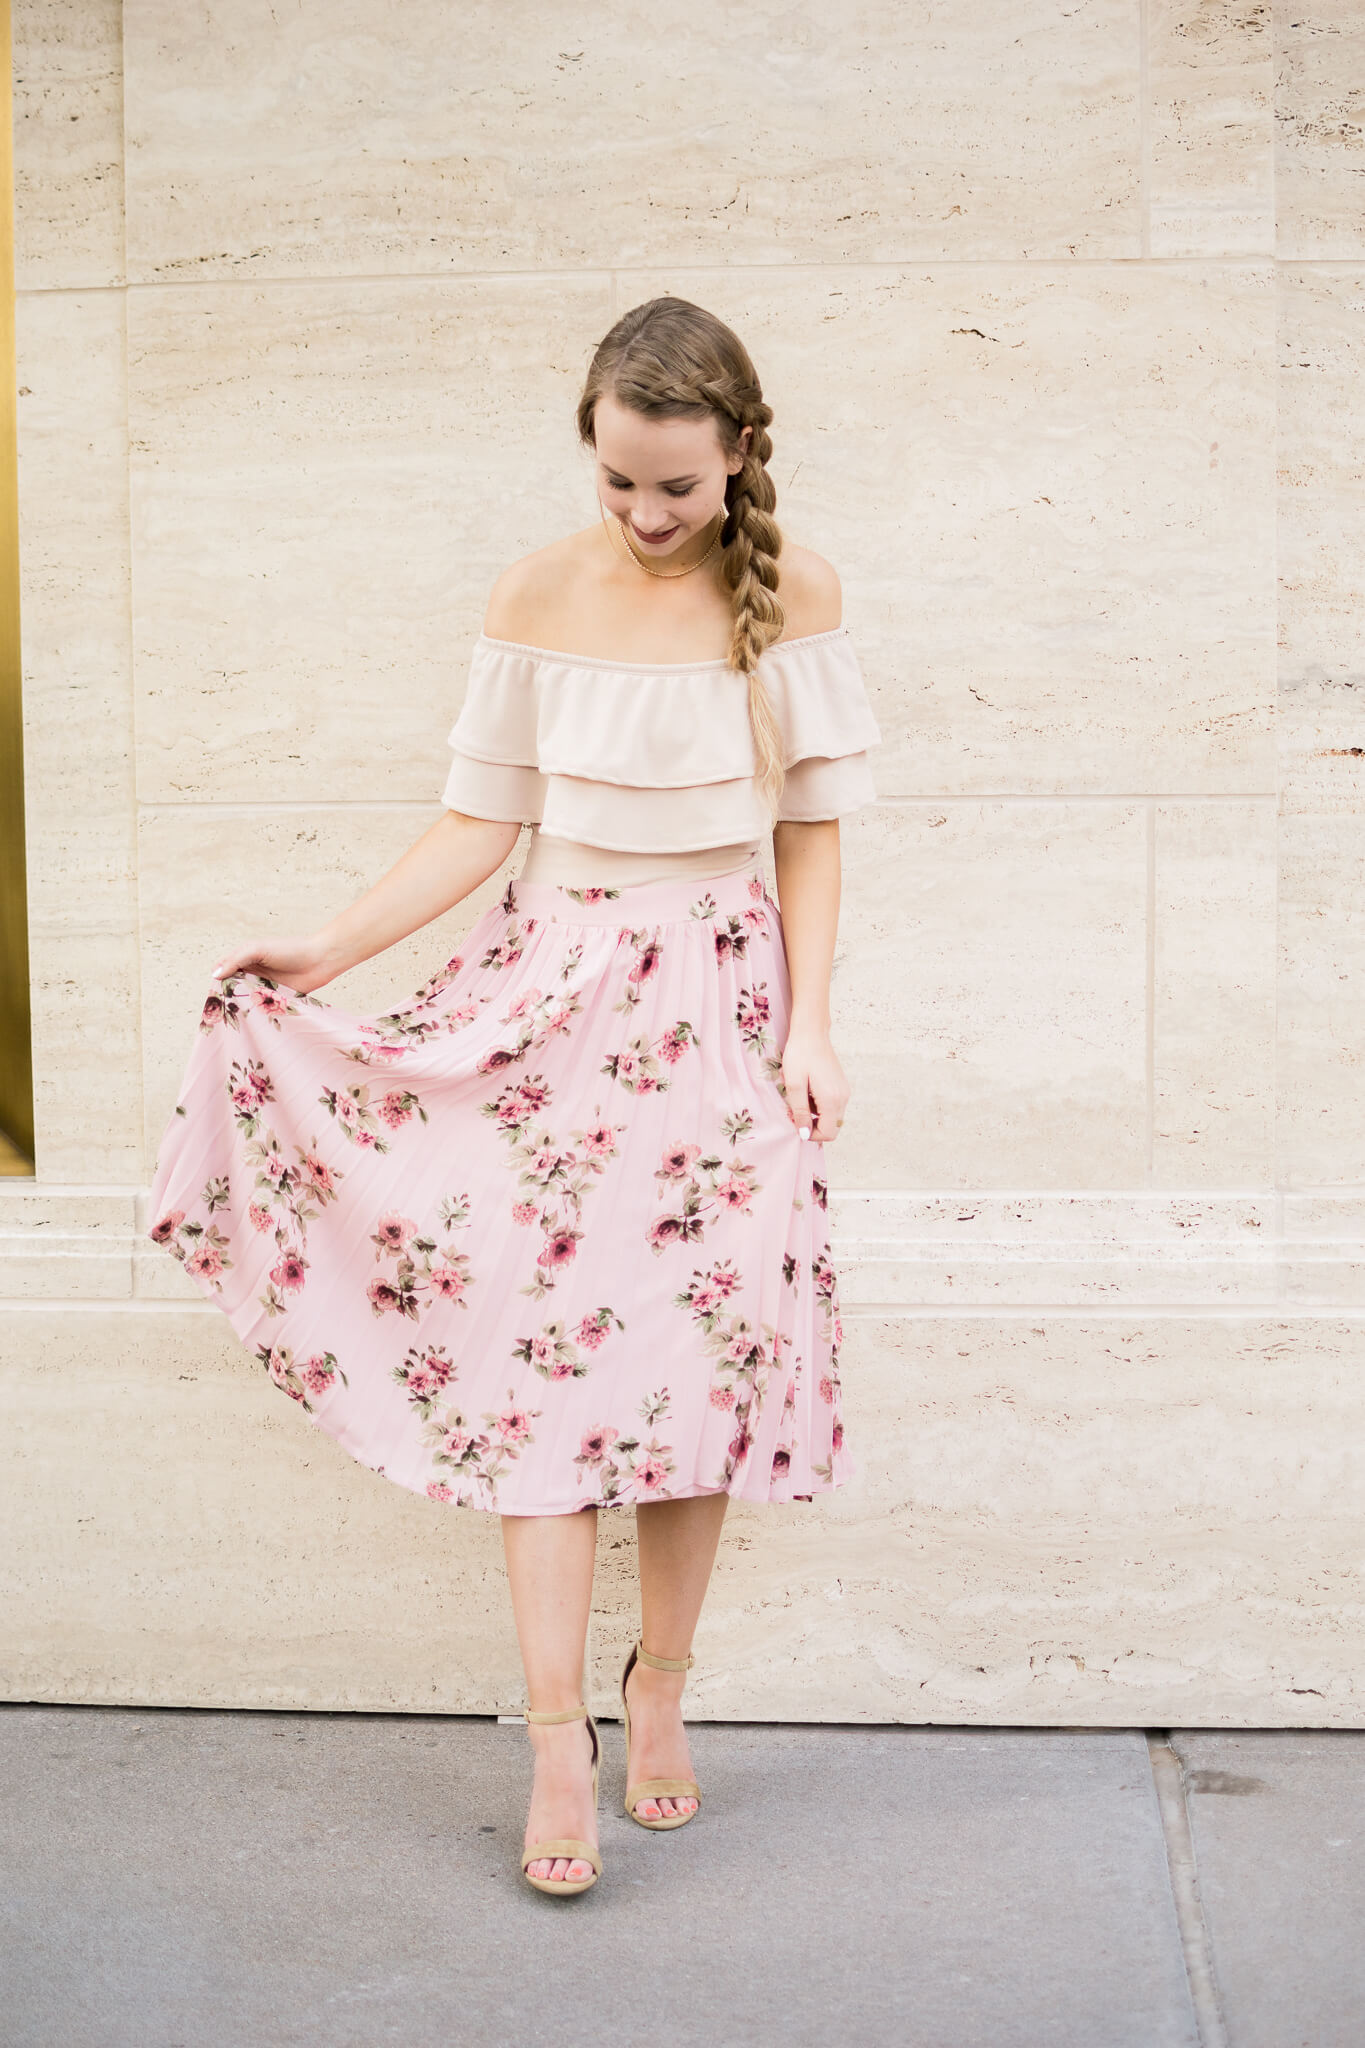 How To Rock A Midi Skirt As A Petite